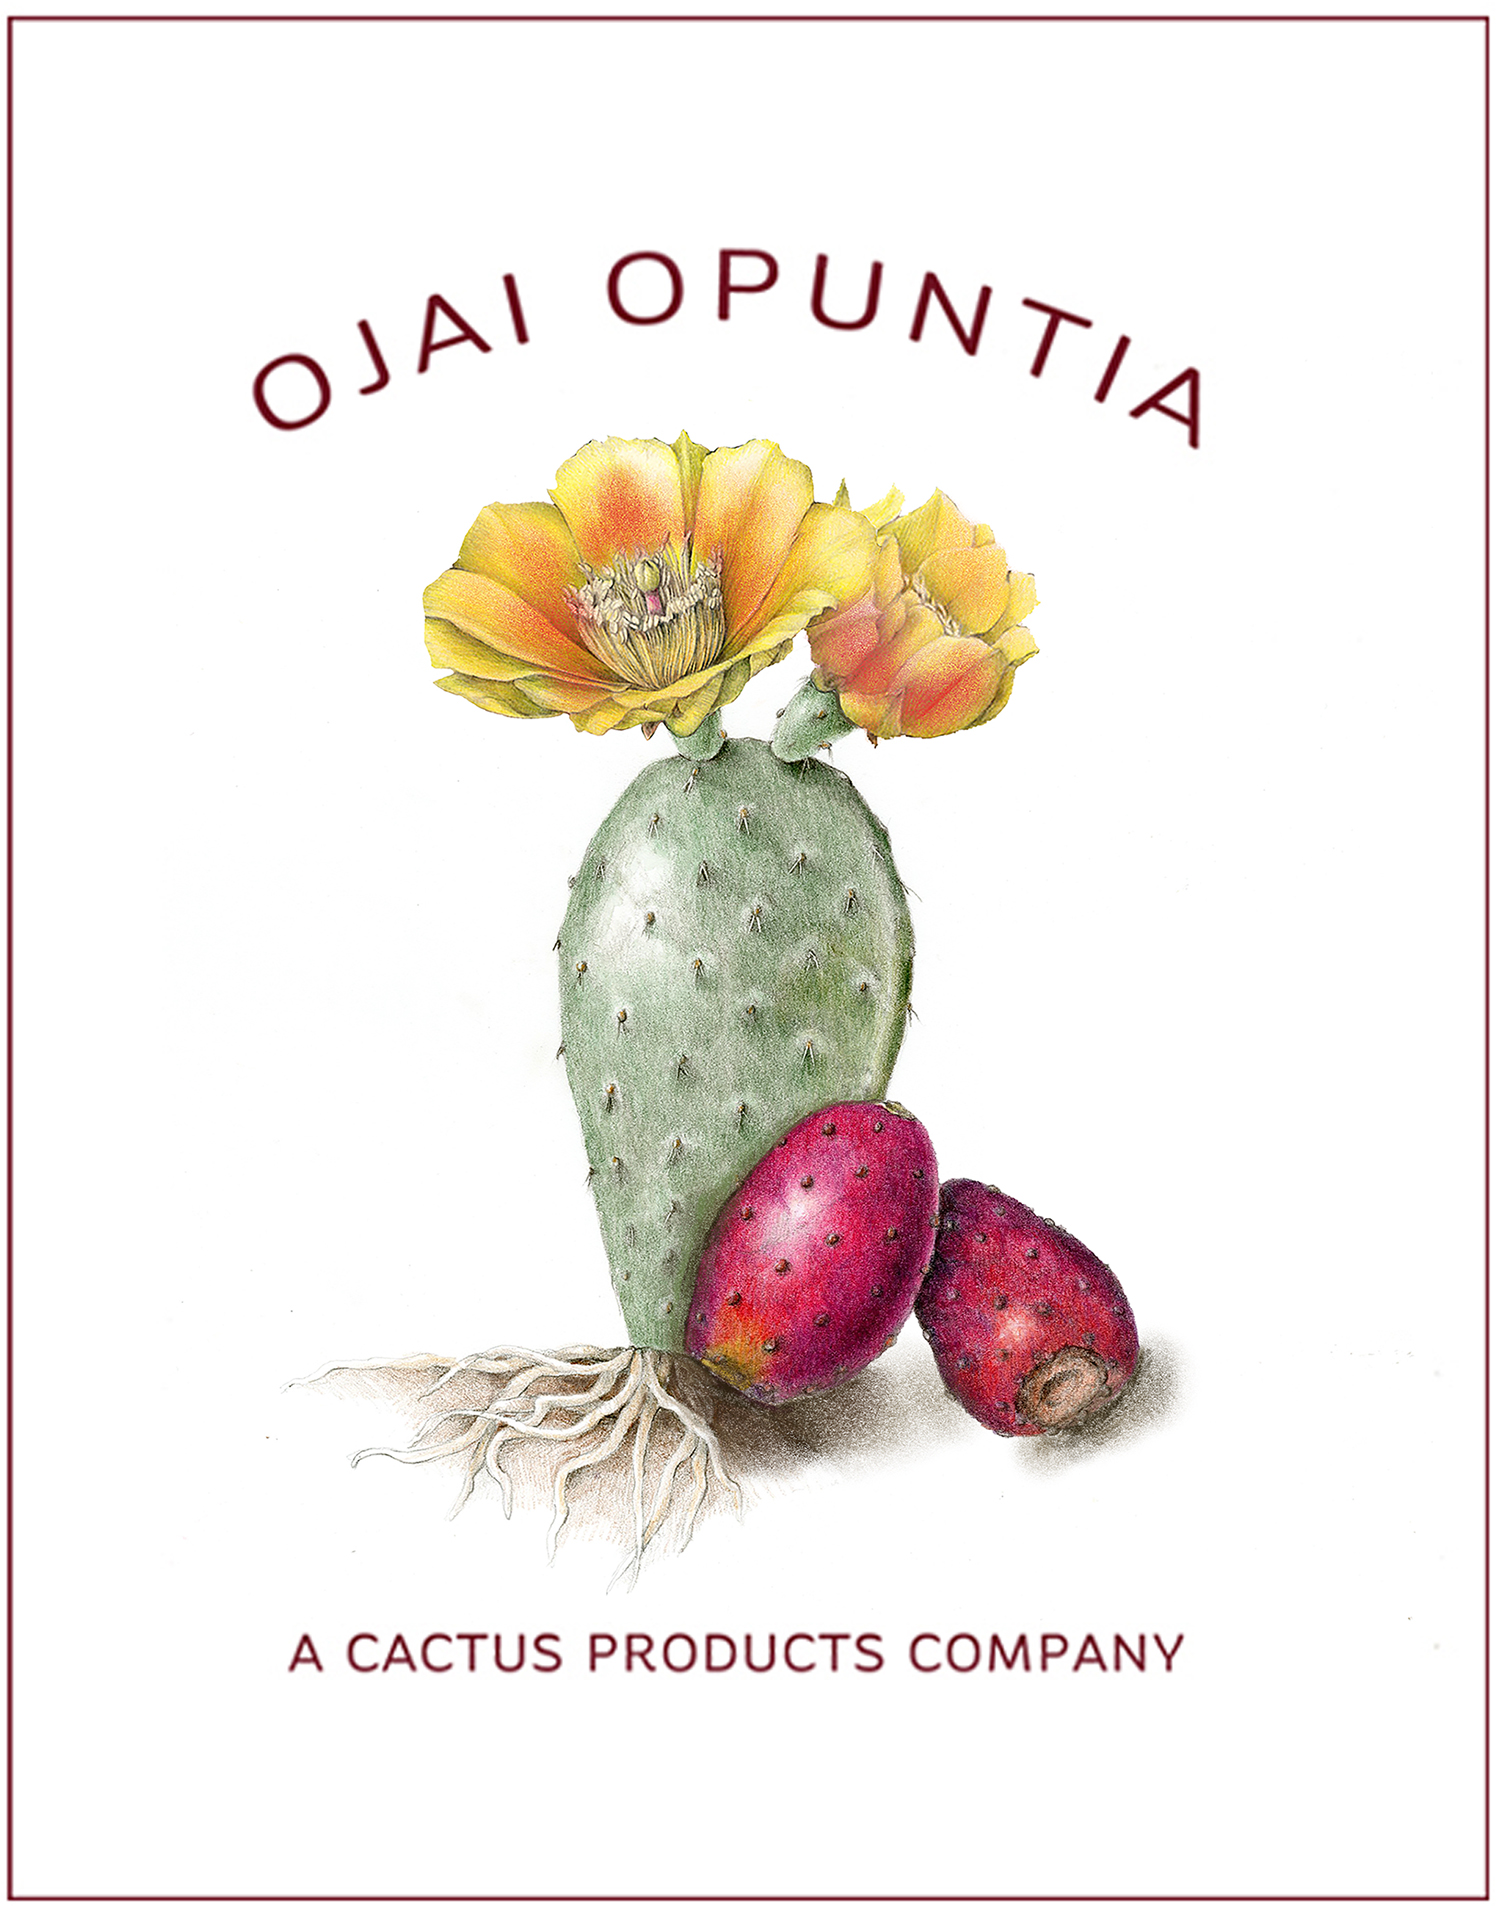 Logo for Ojai Opuntia